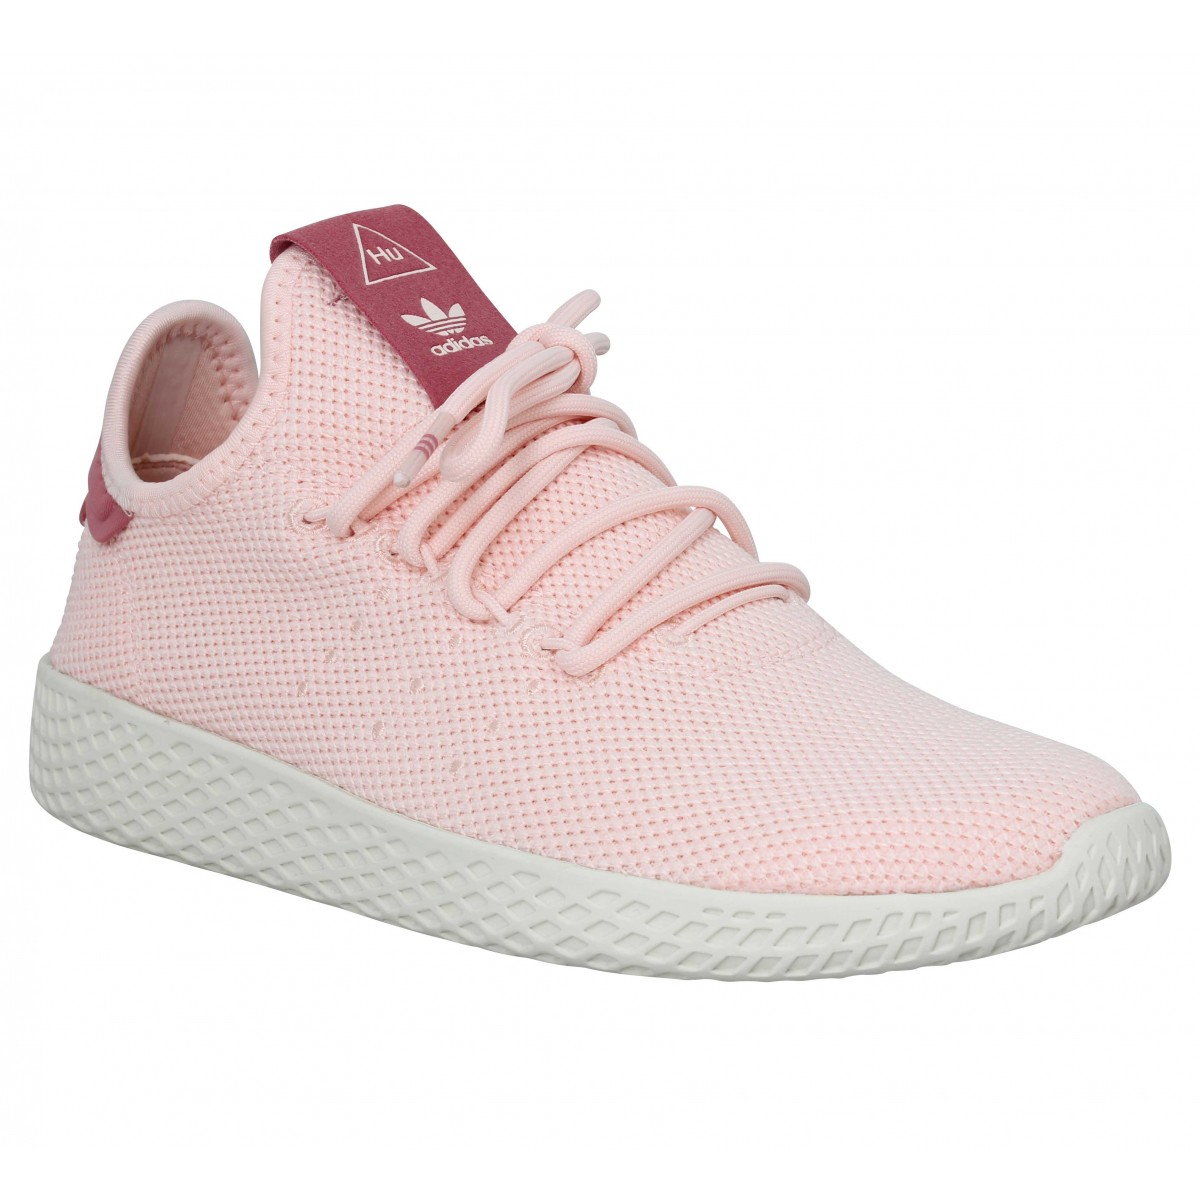 le rapport qualité prix Garantie de satisfaction à 100% prix raisonnable ADIDAS X PHARRELL WILLIAMS PW Tennis mesh Femme Rose